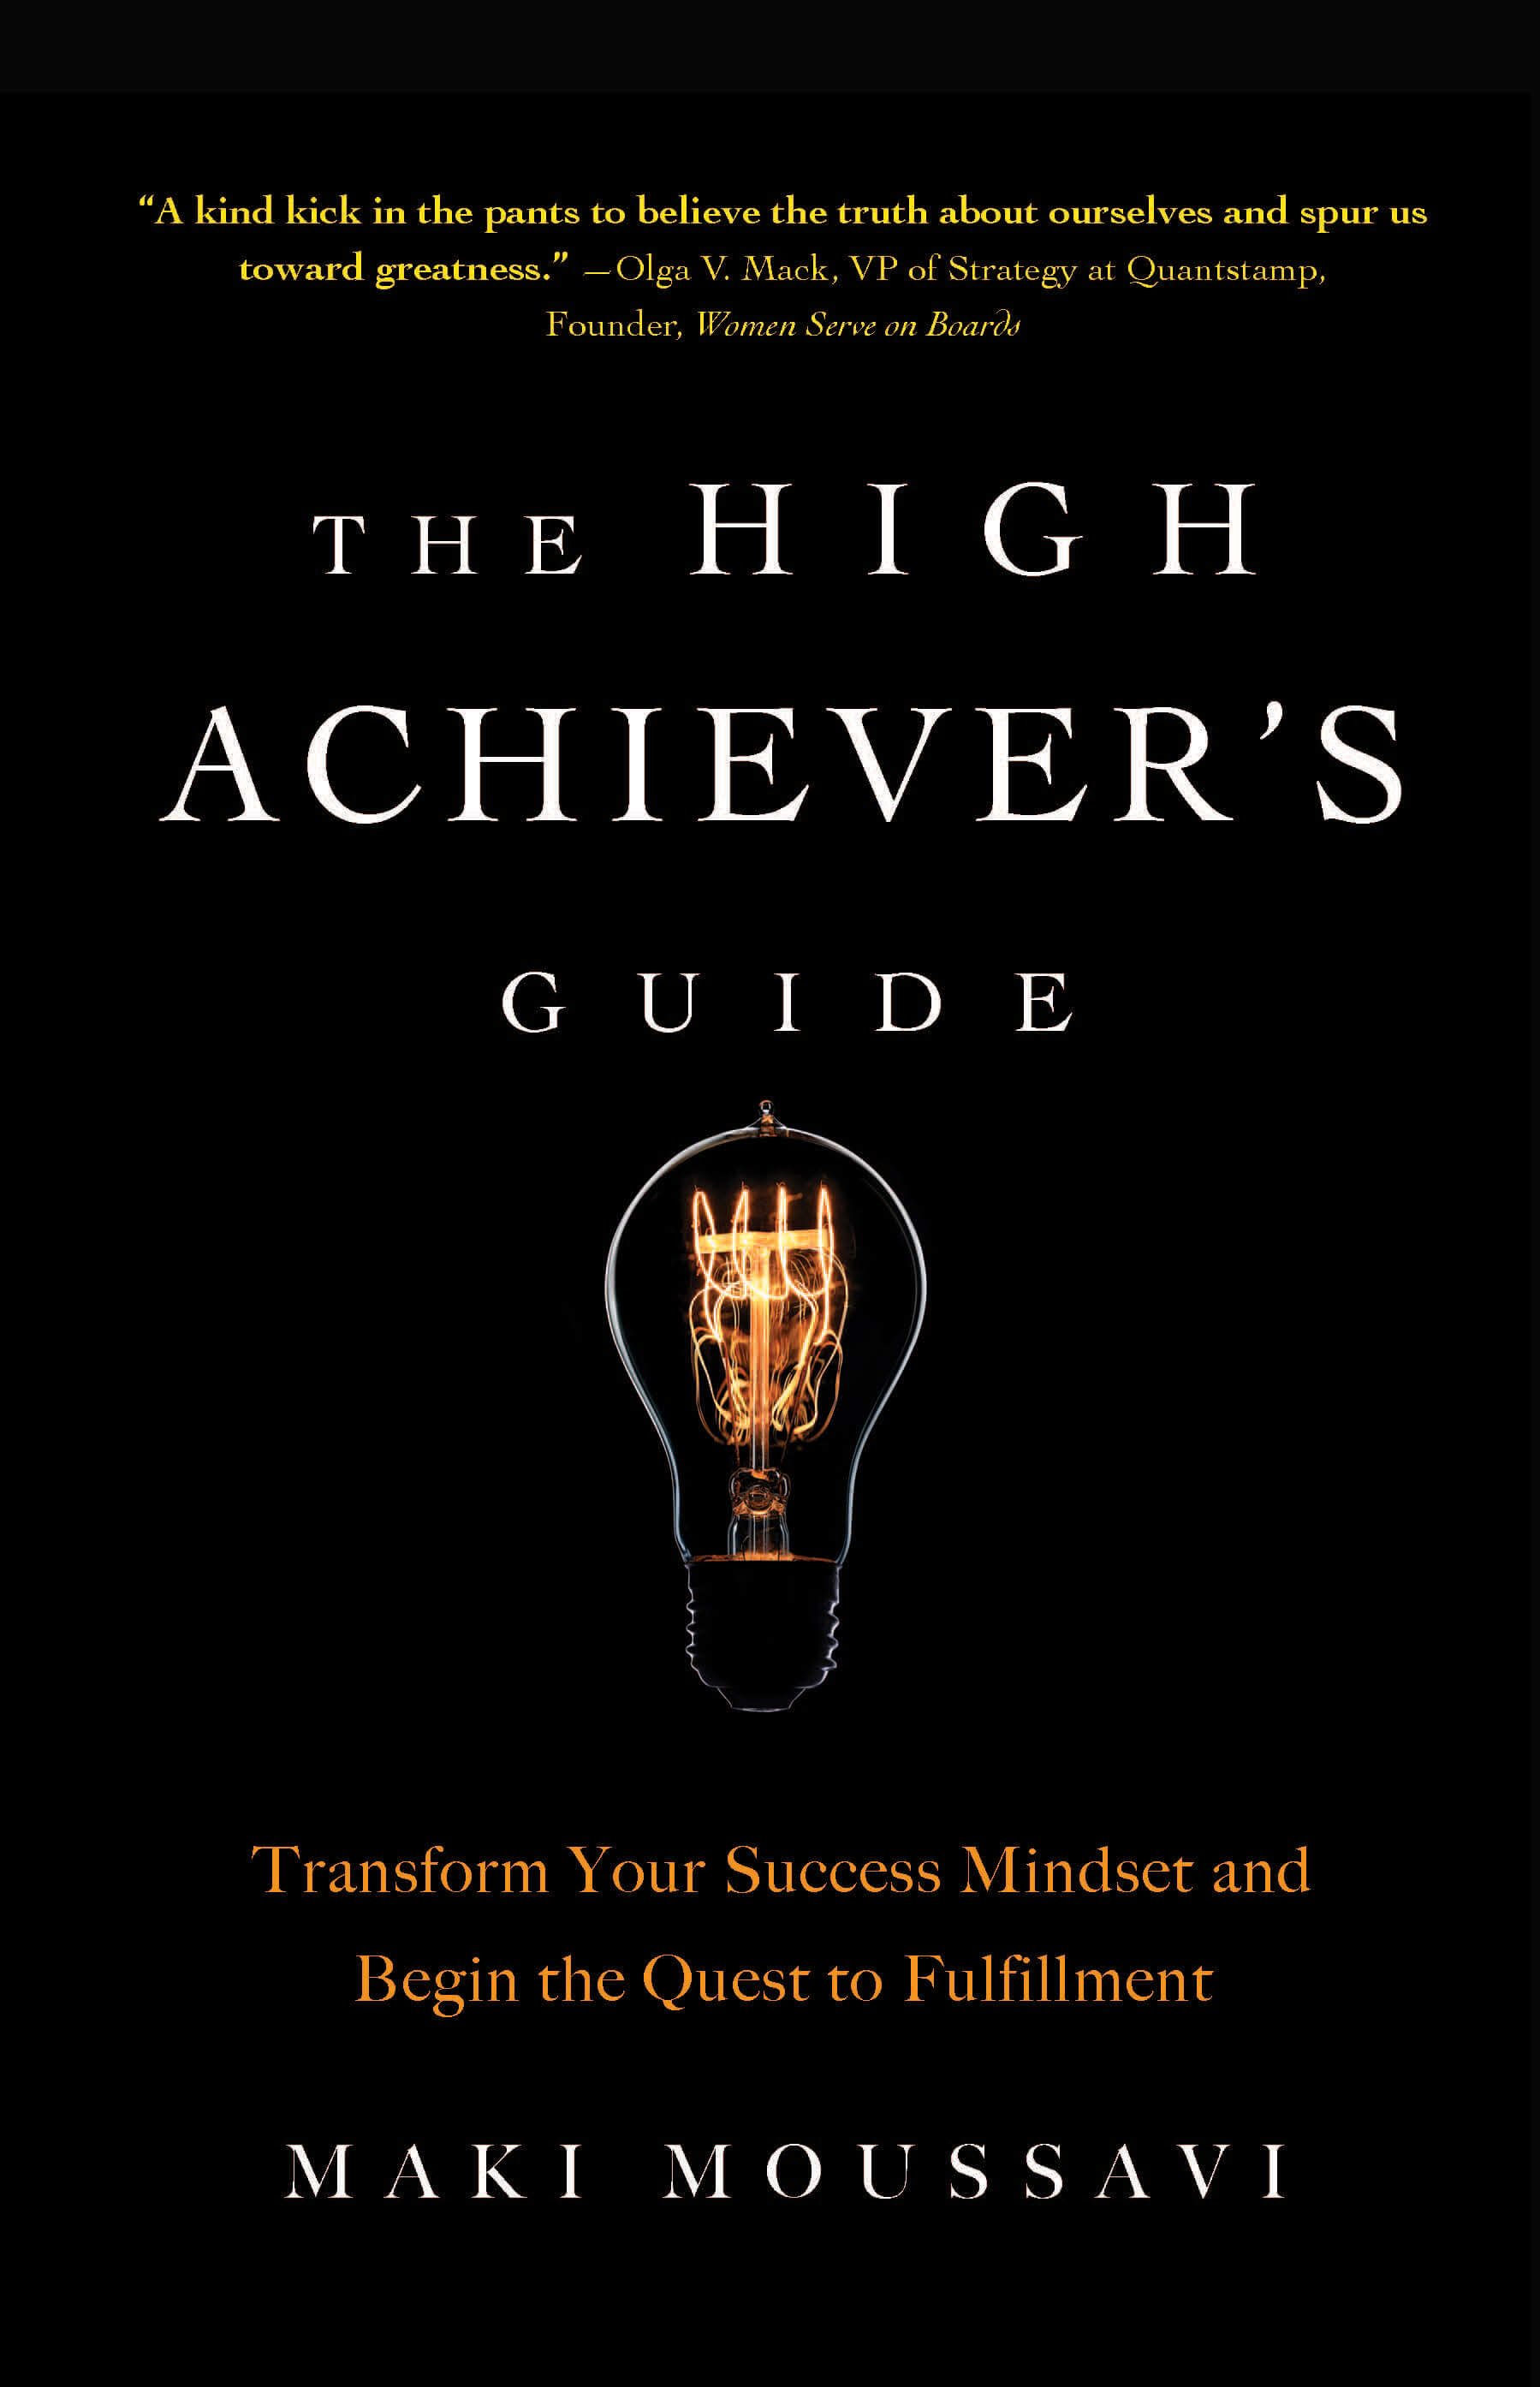 The High Achiever's Guide: Transform Your Success Mindset and Begin the Quest to Fulfillment